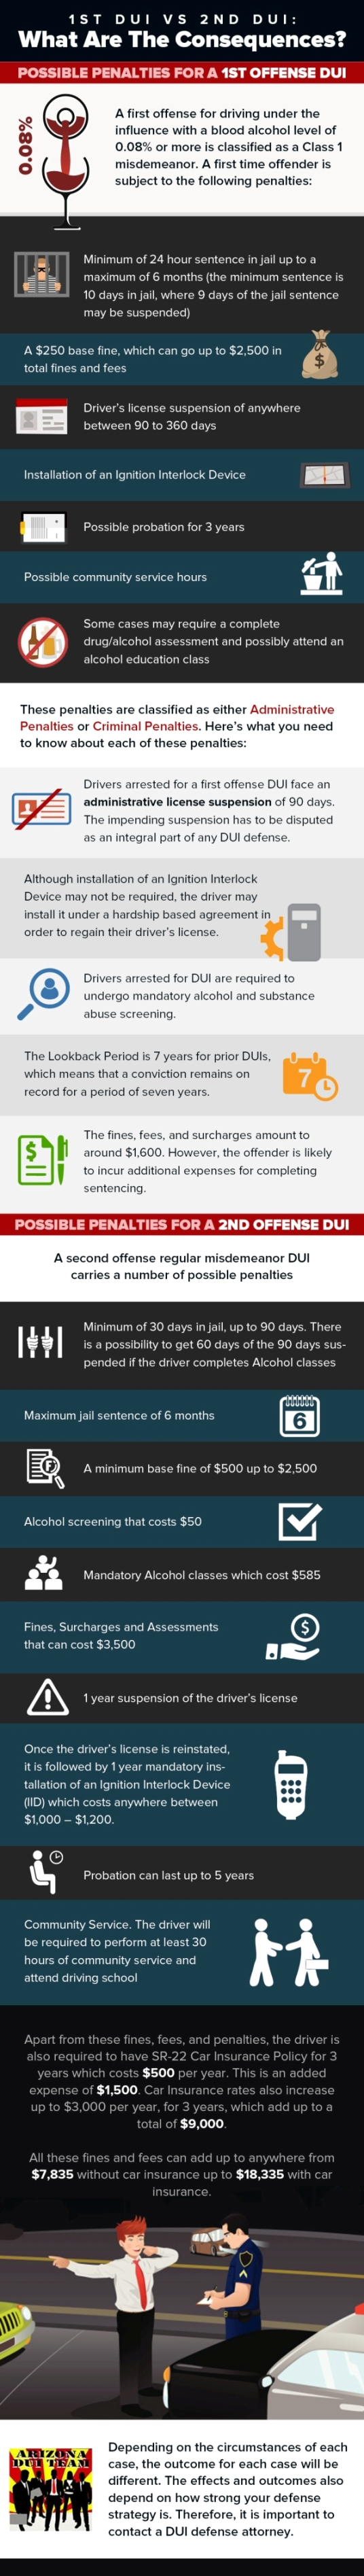 1st DUI vs 2nd DUI - What Are The Consequences